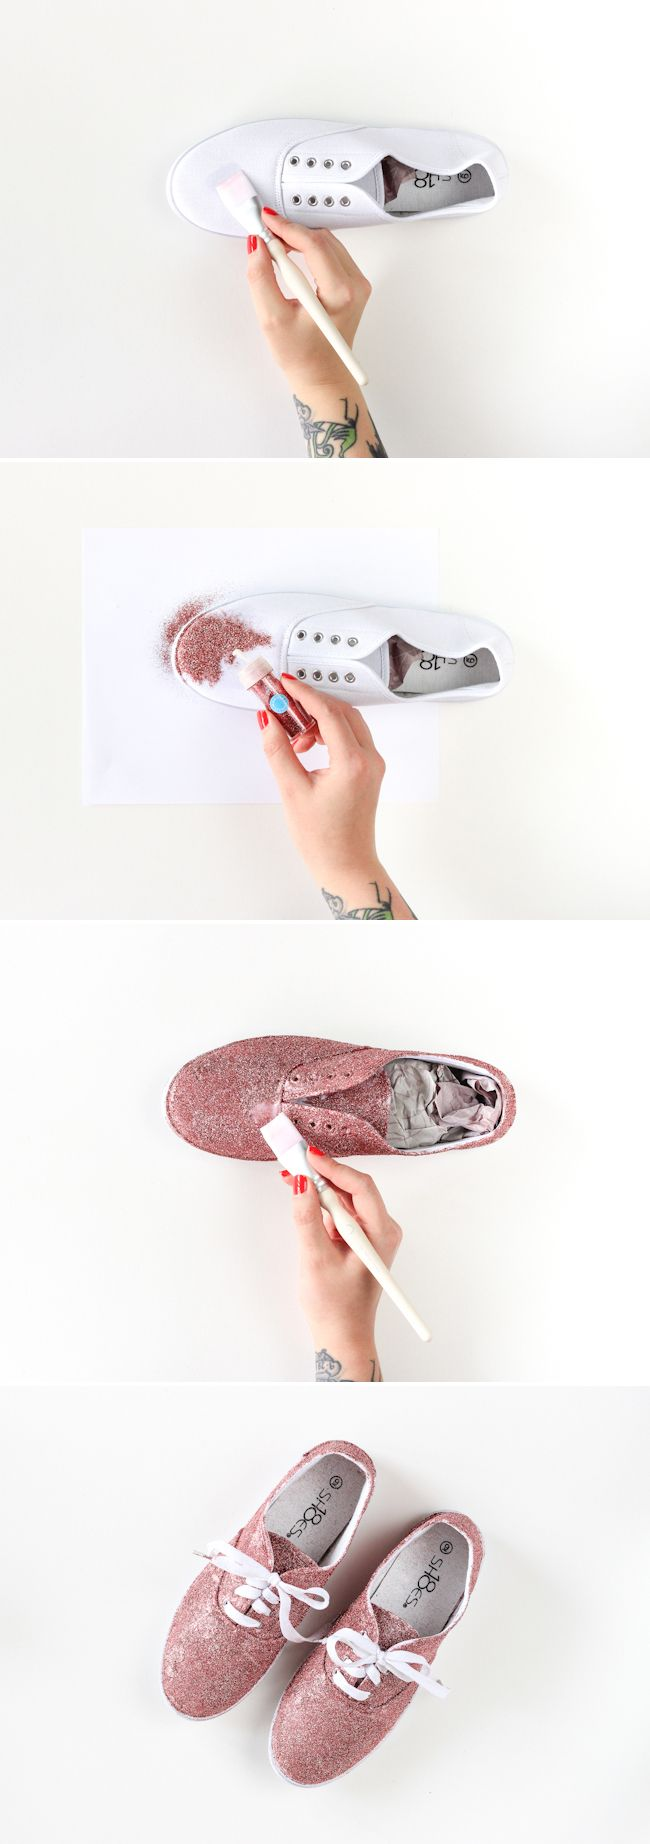 How to Make Glitter Shoes Diy klær, Glitter sko  Diy clothes, Glitter shoes